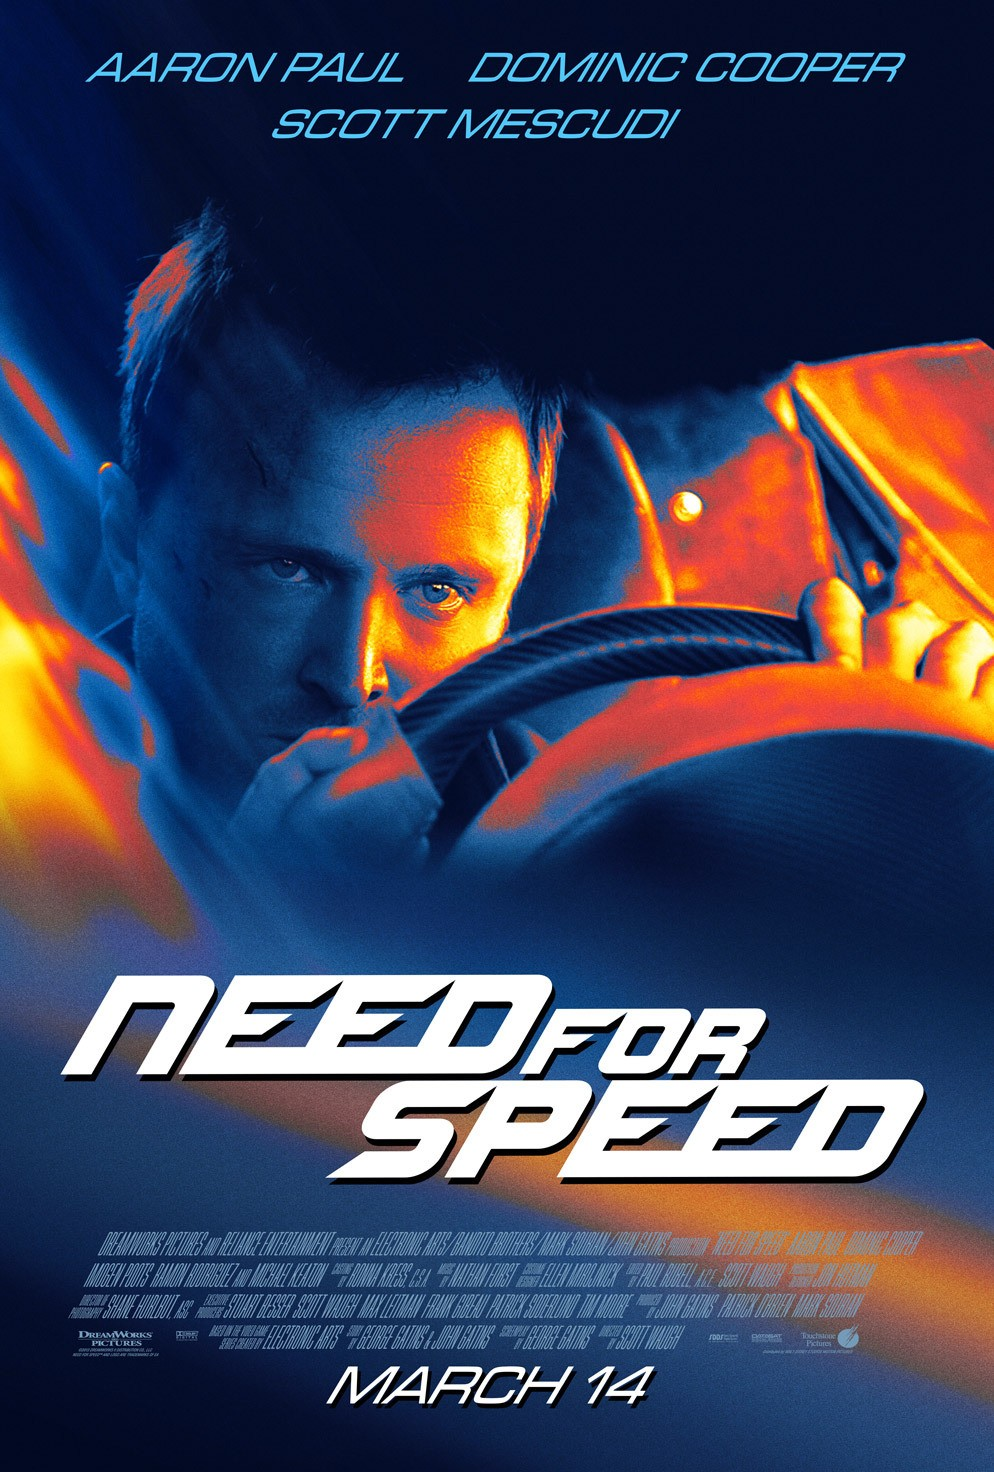 Need for Speed-Official Poster Banner PROMO POSTER XLRG-03FEVEREIRO2014